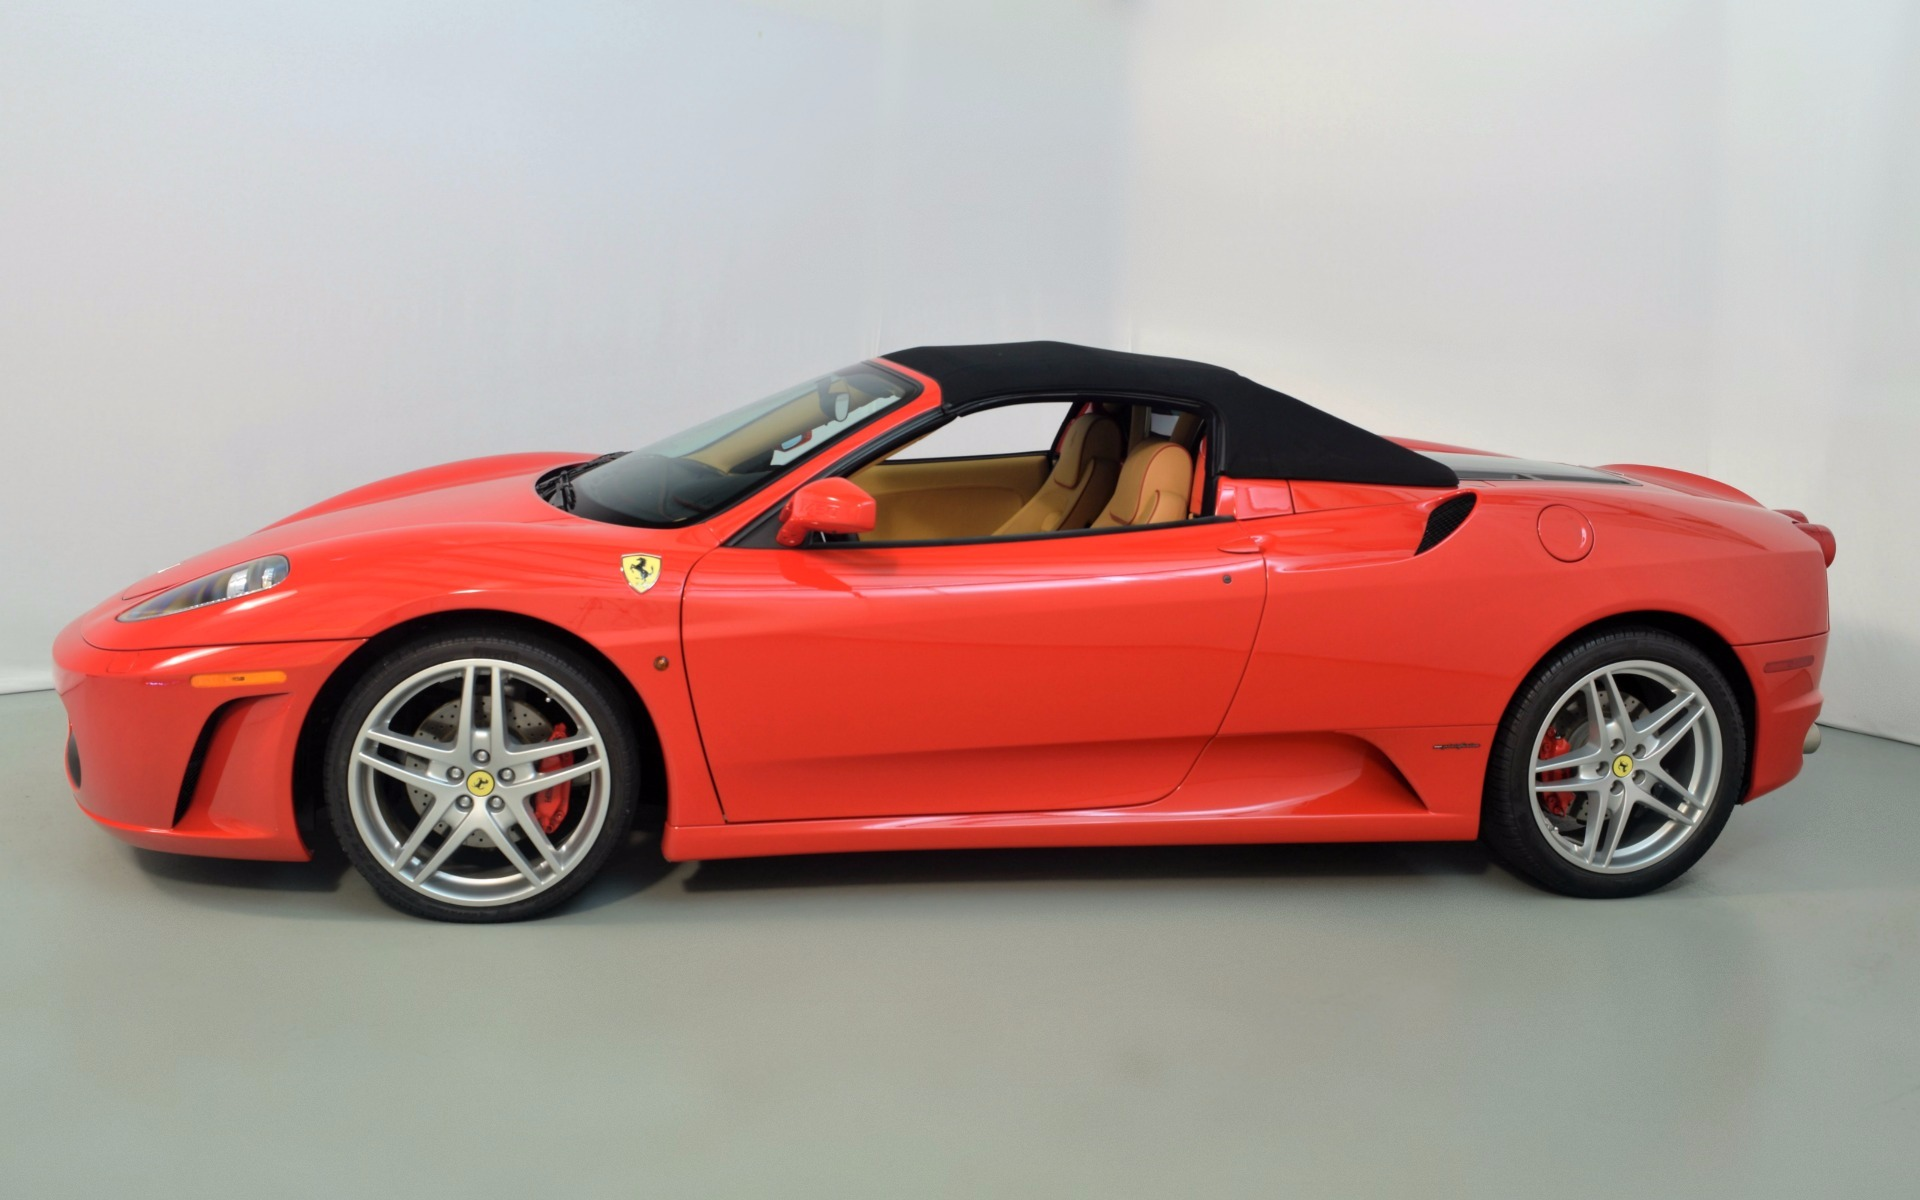 How To Calculate Apr On A Loan >> 2006 Ferrari F430 F1 Spider For Sale in Norwell, MA 148058 | Mclaren Boston